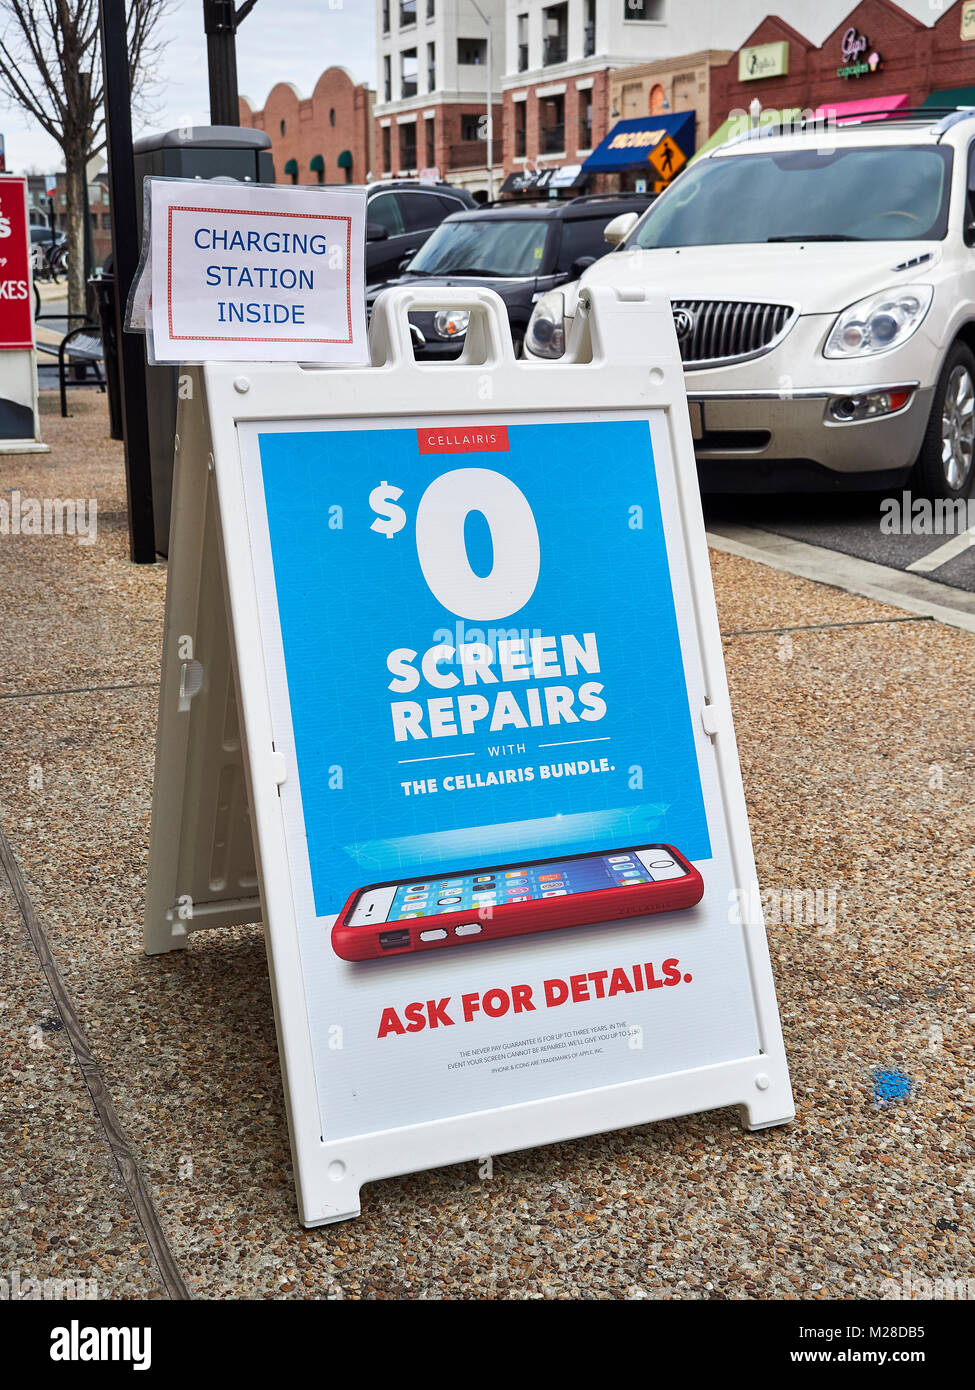 Sidewalk sign advertising free cell phone screen repairs with Cellariris bundles and indicating a charging station - Stock Image